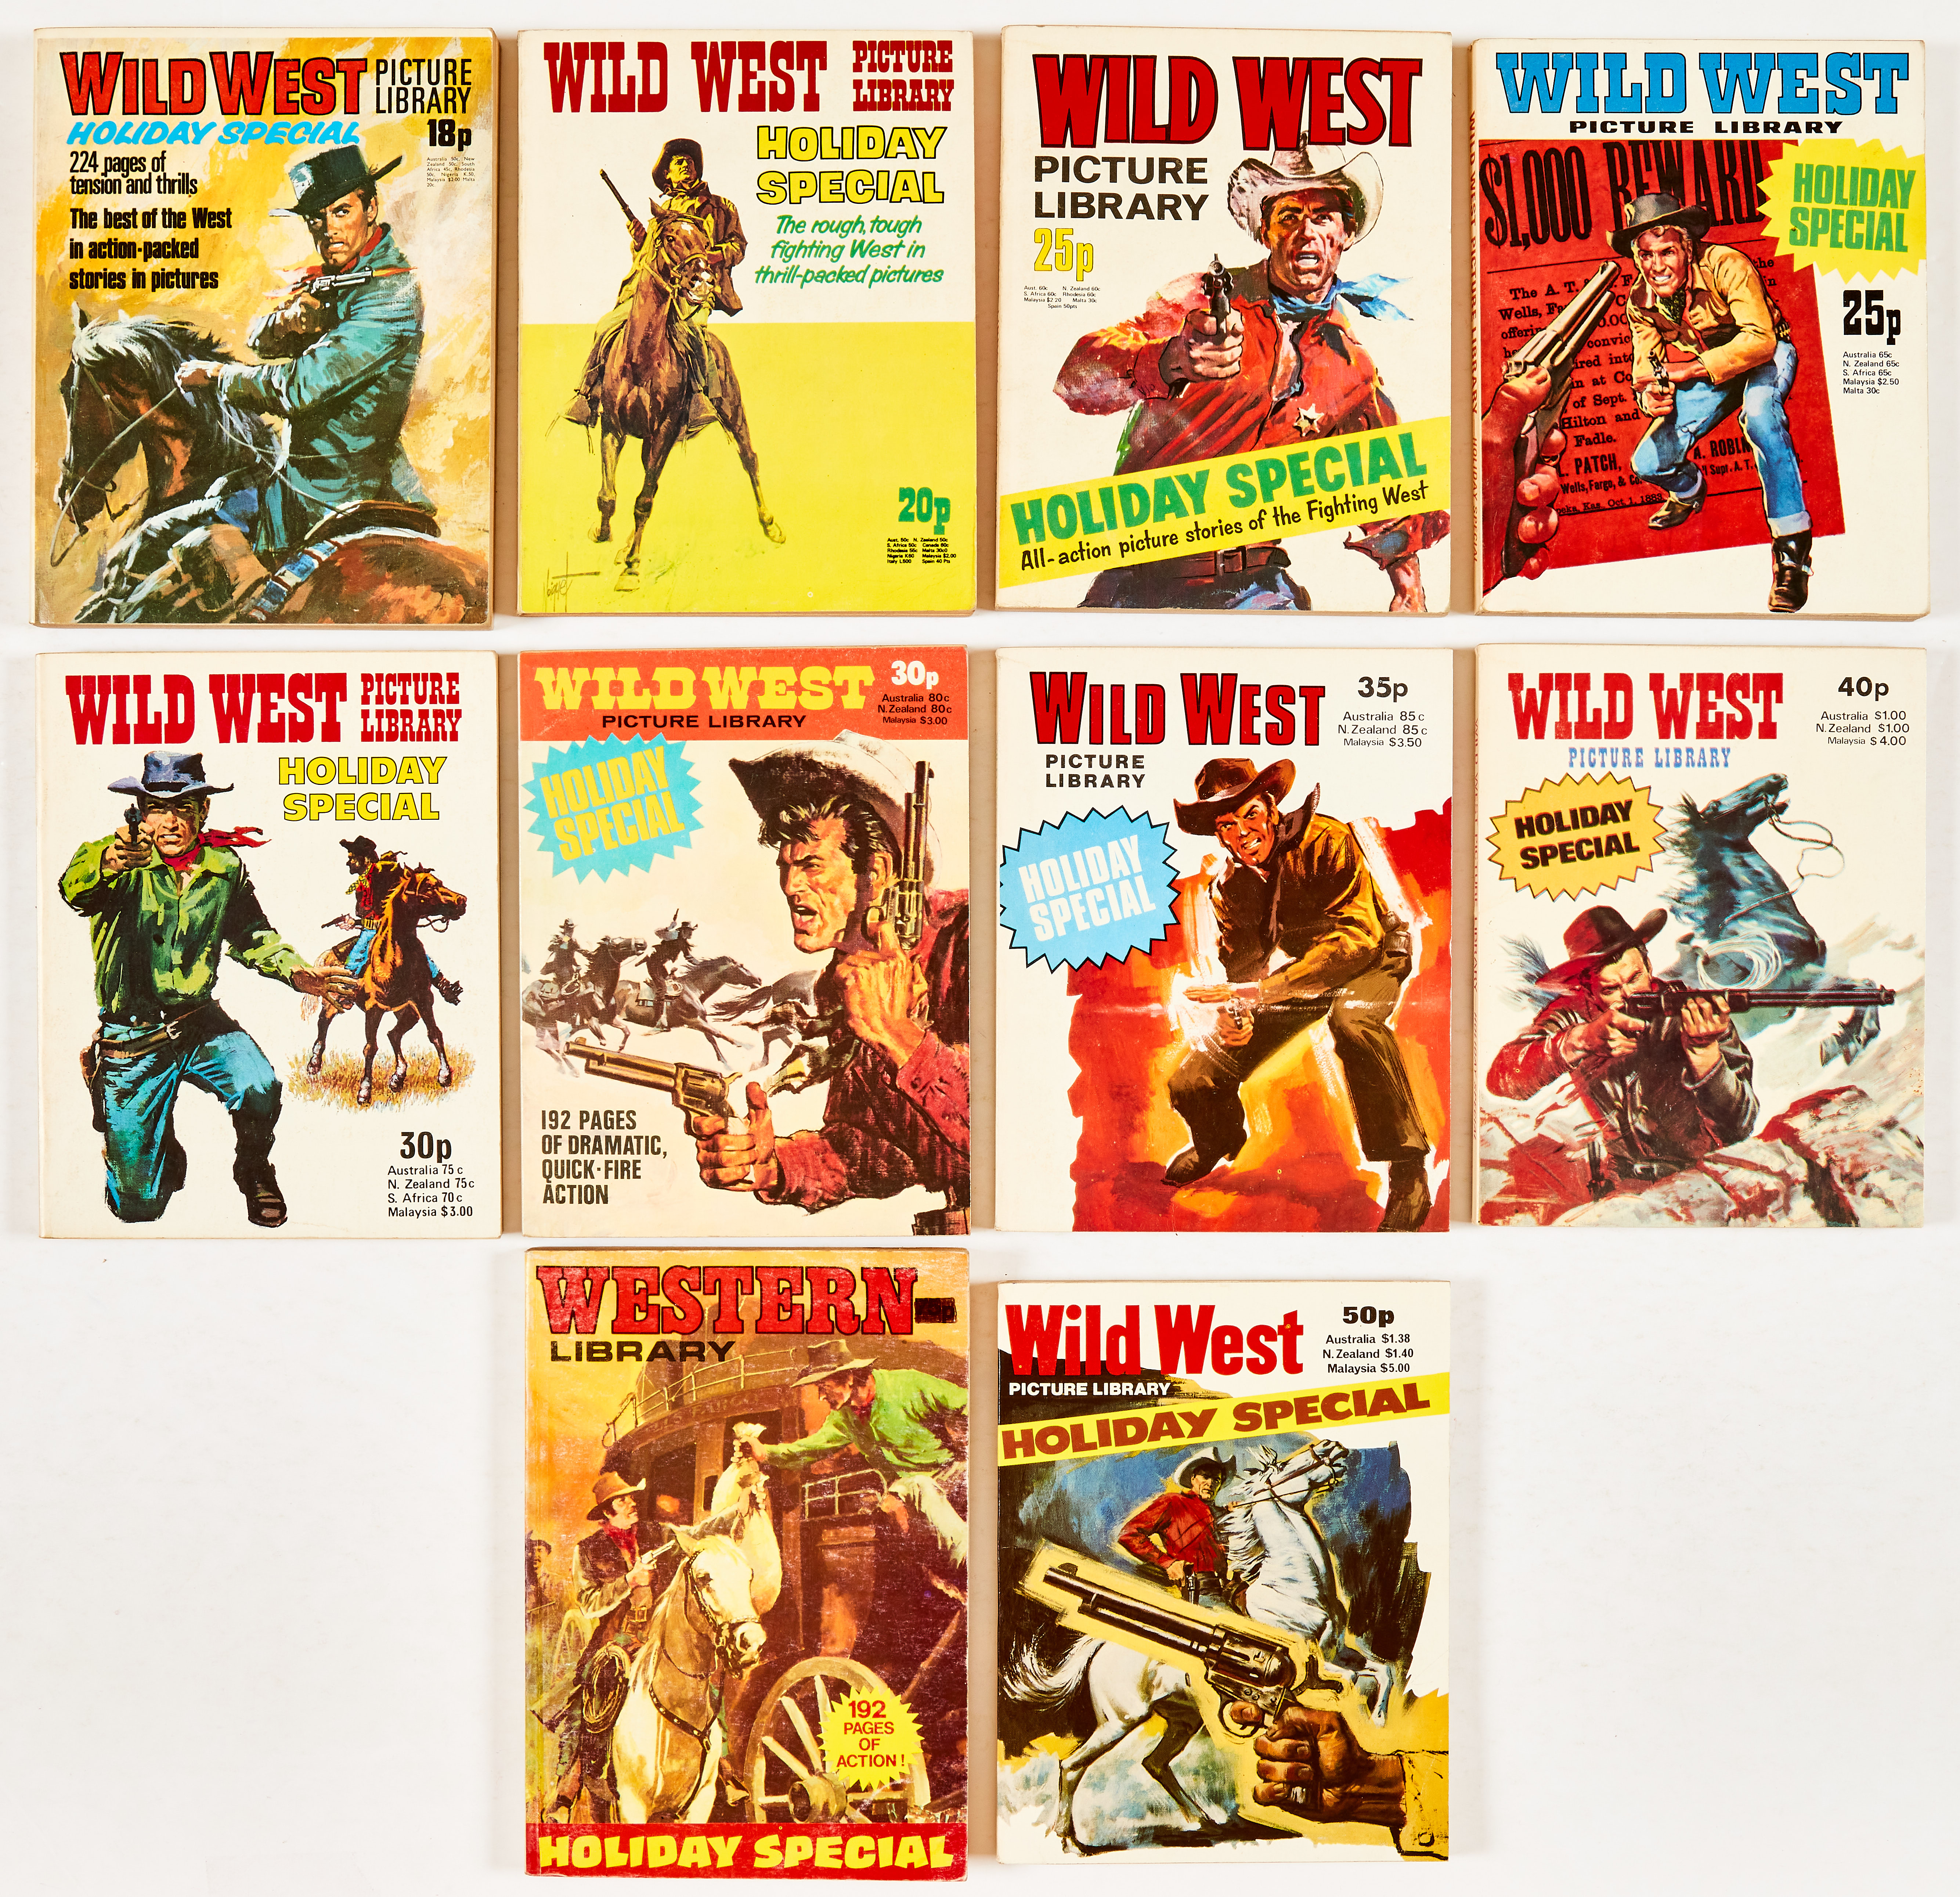 Wild West Picture Library Holiday Special (1973-80, 82) [vfn/nm]. With Western Library Holiday